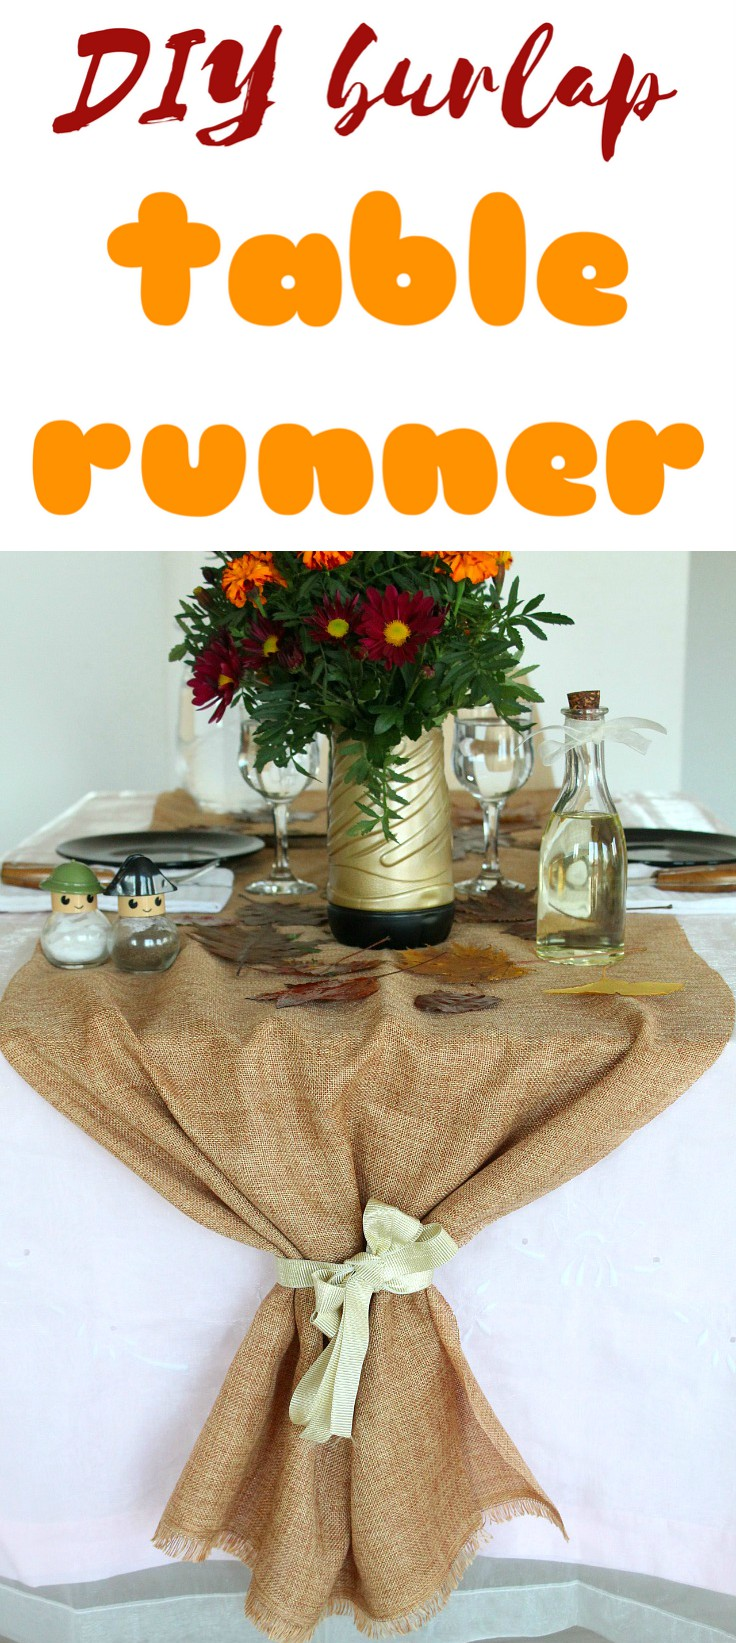 If you're looking for an affordable table runner for the upcoming entertaining season, you might wanna consider making this jute table runner! Its super easy & quick, made from burlap and ribbon.